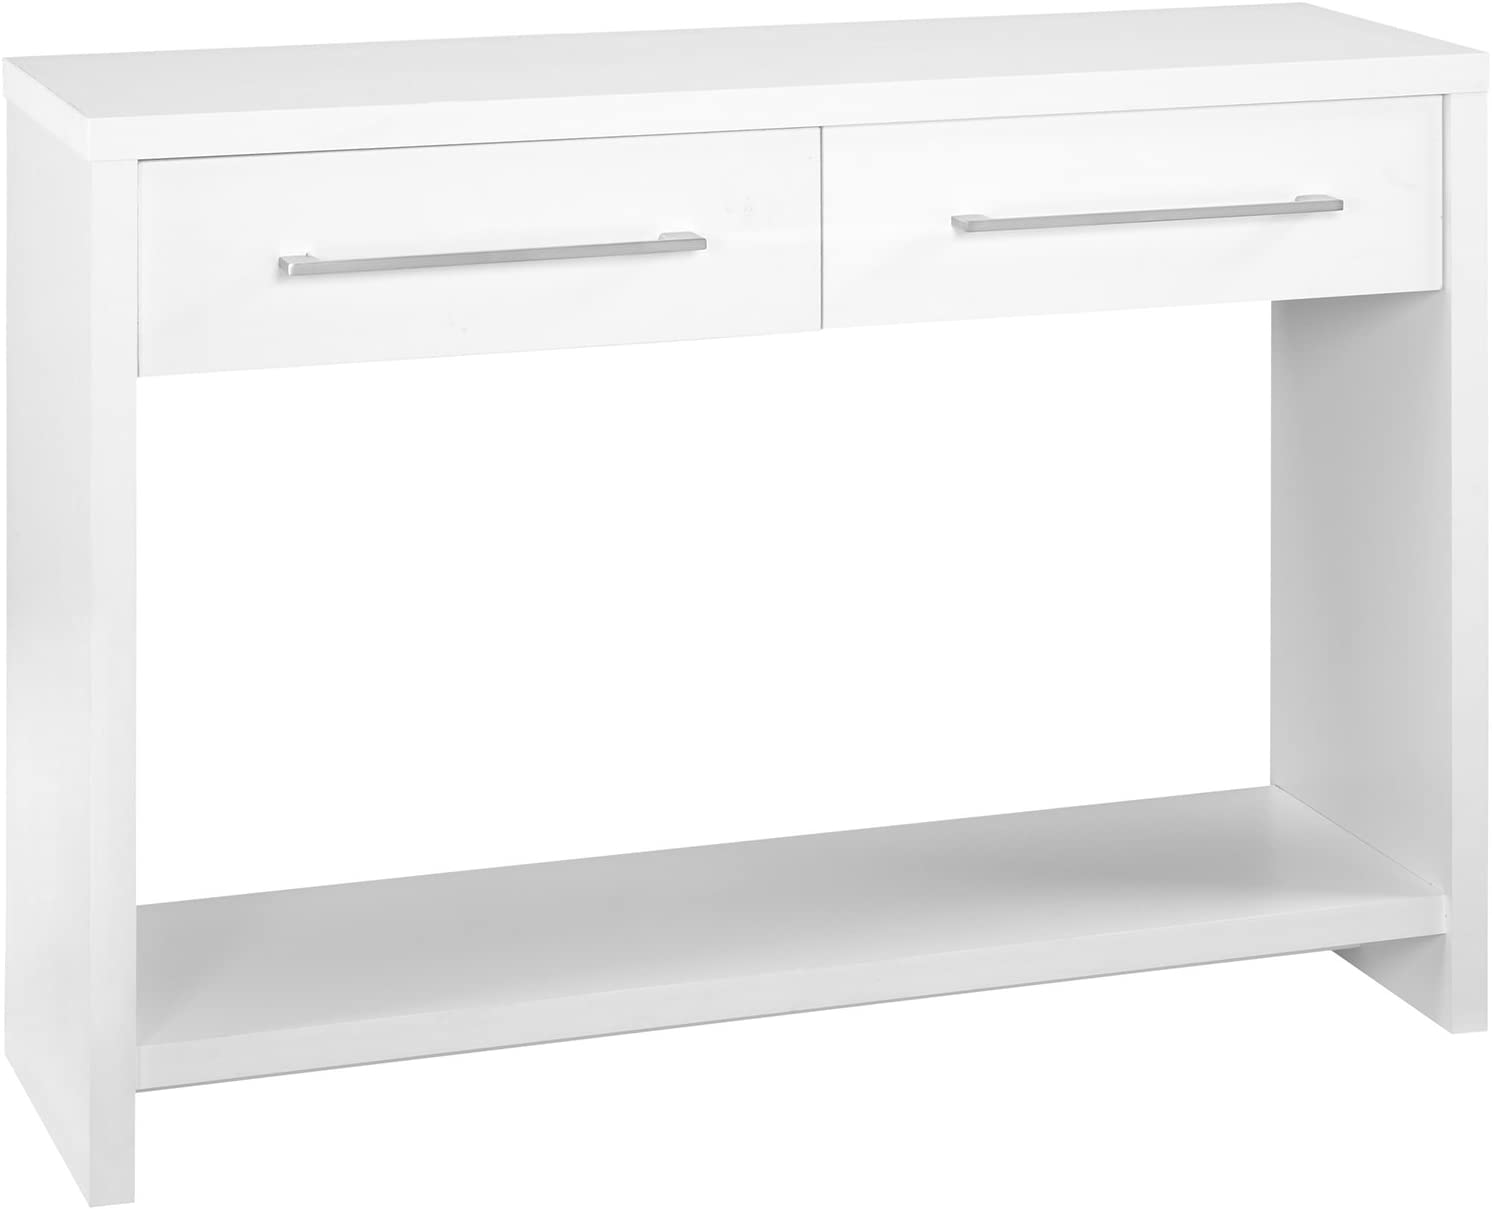 Amazon.com: ClosetMaid 1652 Console Table With 2 Storage Drawers, White: Home & Kitchen